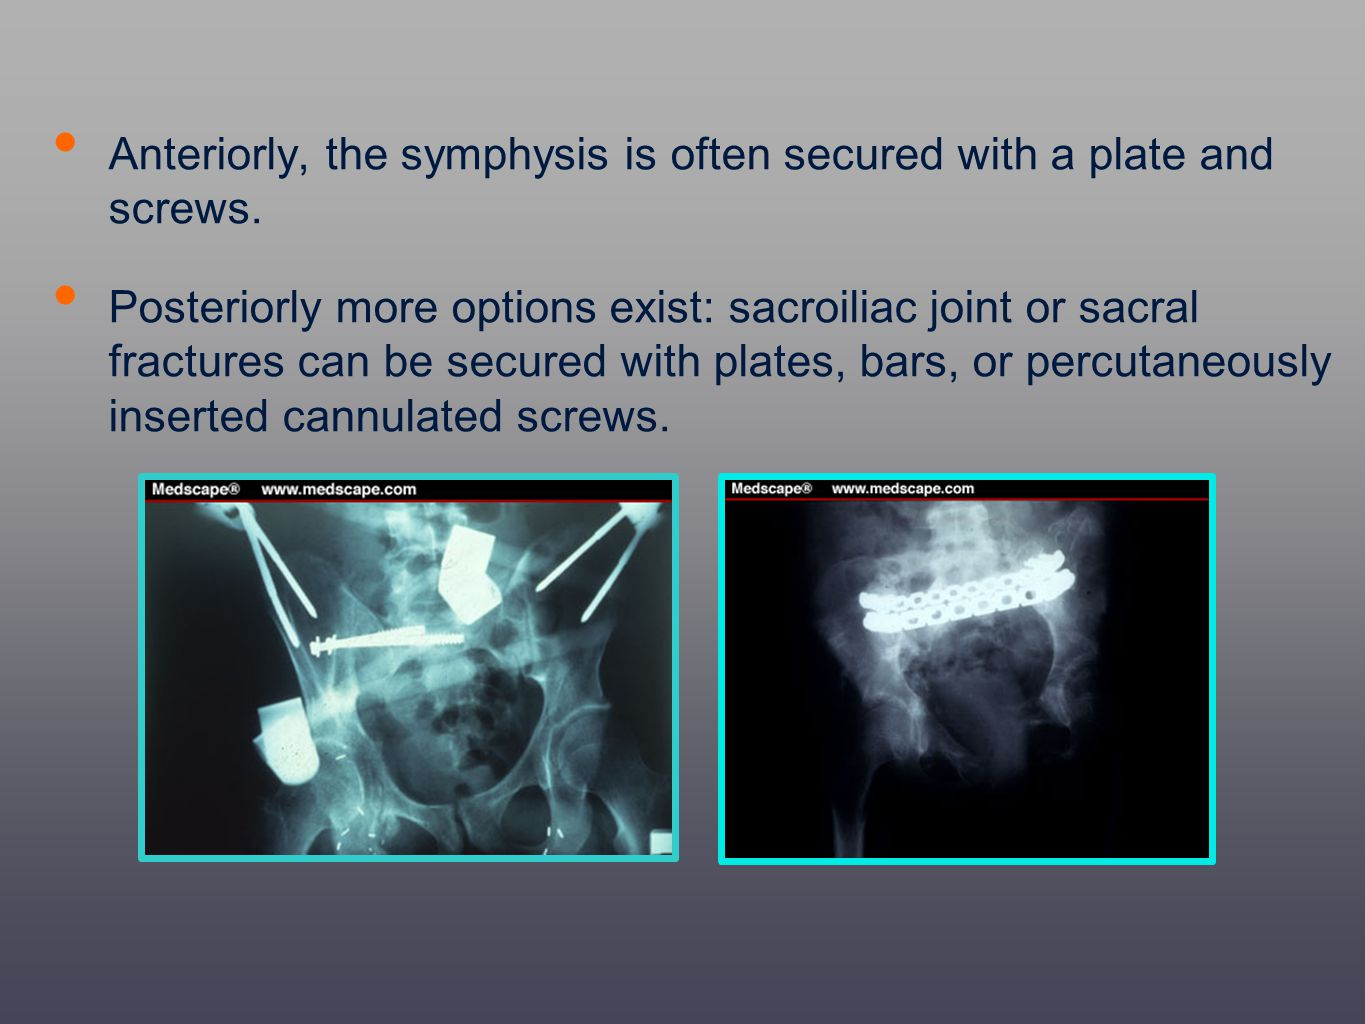 Anteriorly, the symphysis is often secured with a plate and screws. Posteriorly more options exist: sacroiliac joint or sacral fractures can be secure